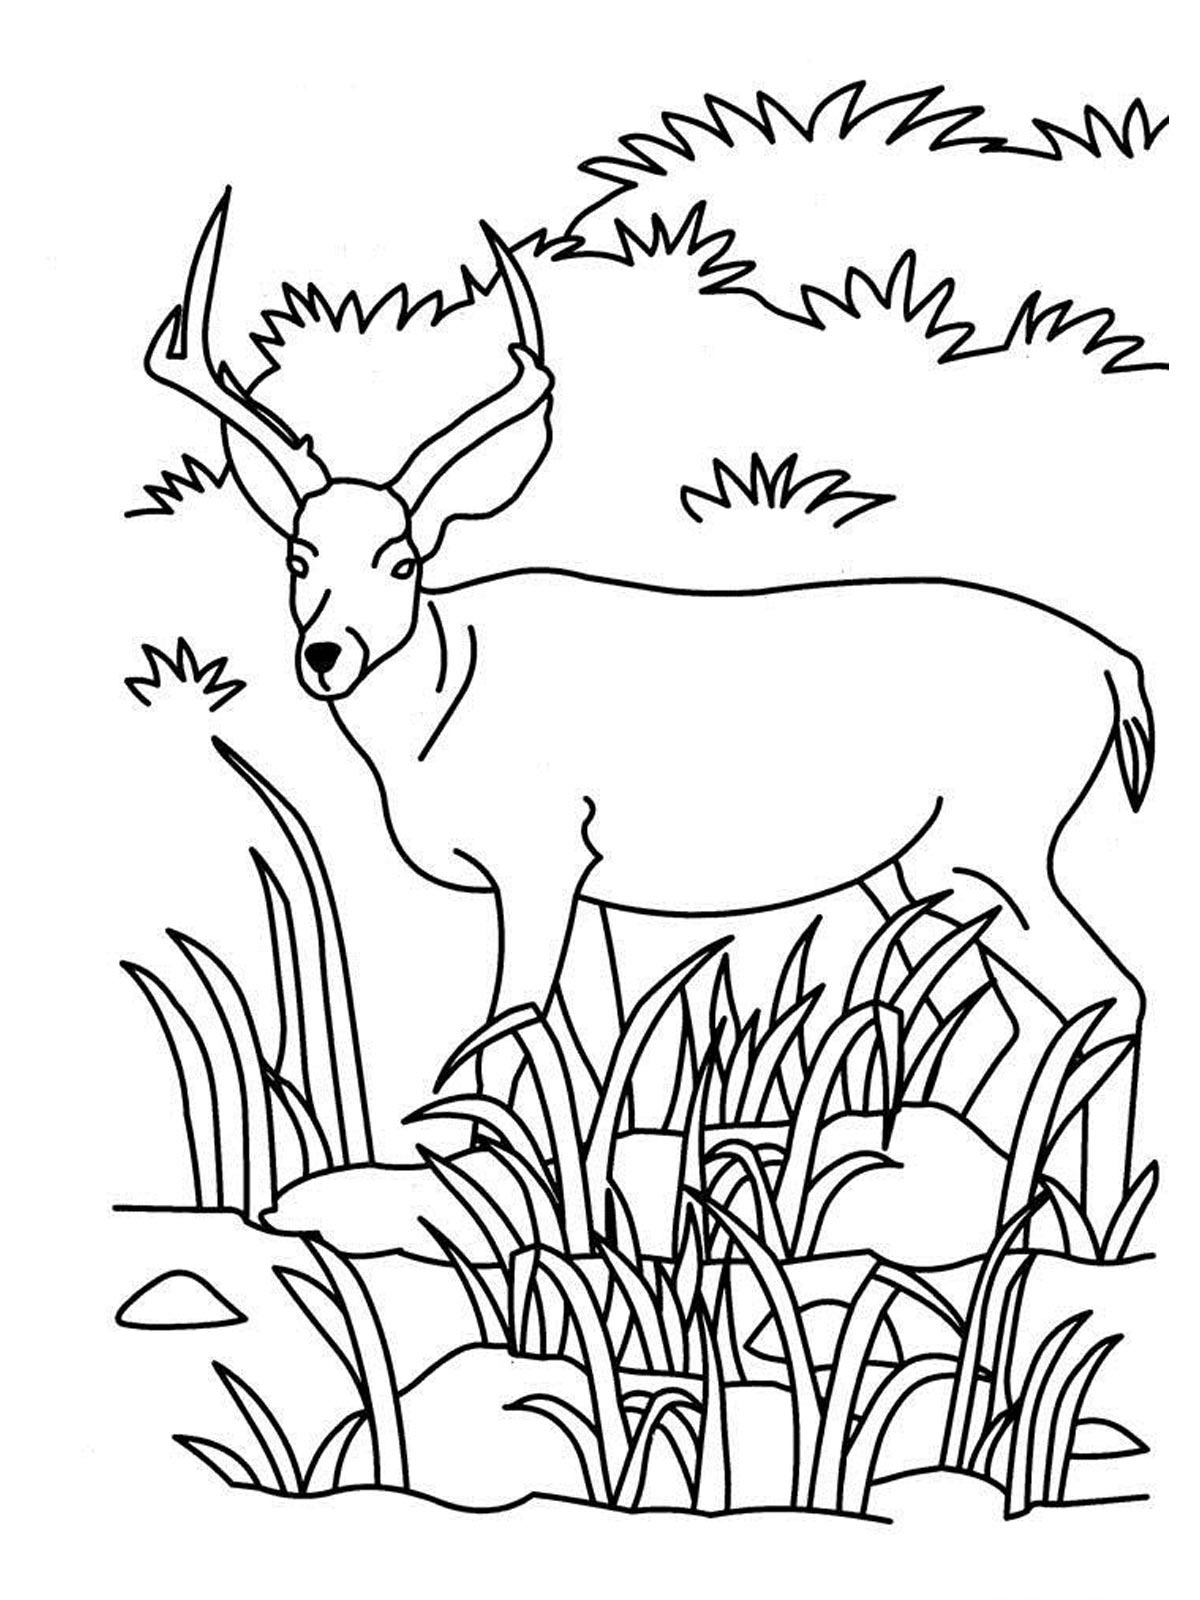 coloring pages of grassland animals grassland animals coloring pages coloring home of pages coloring grassland animals